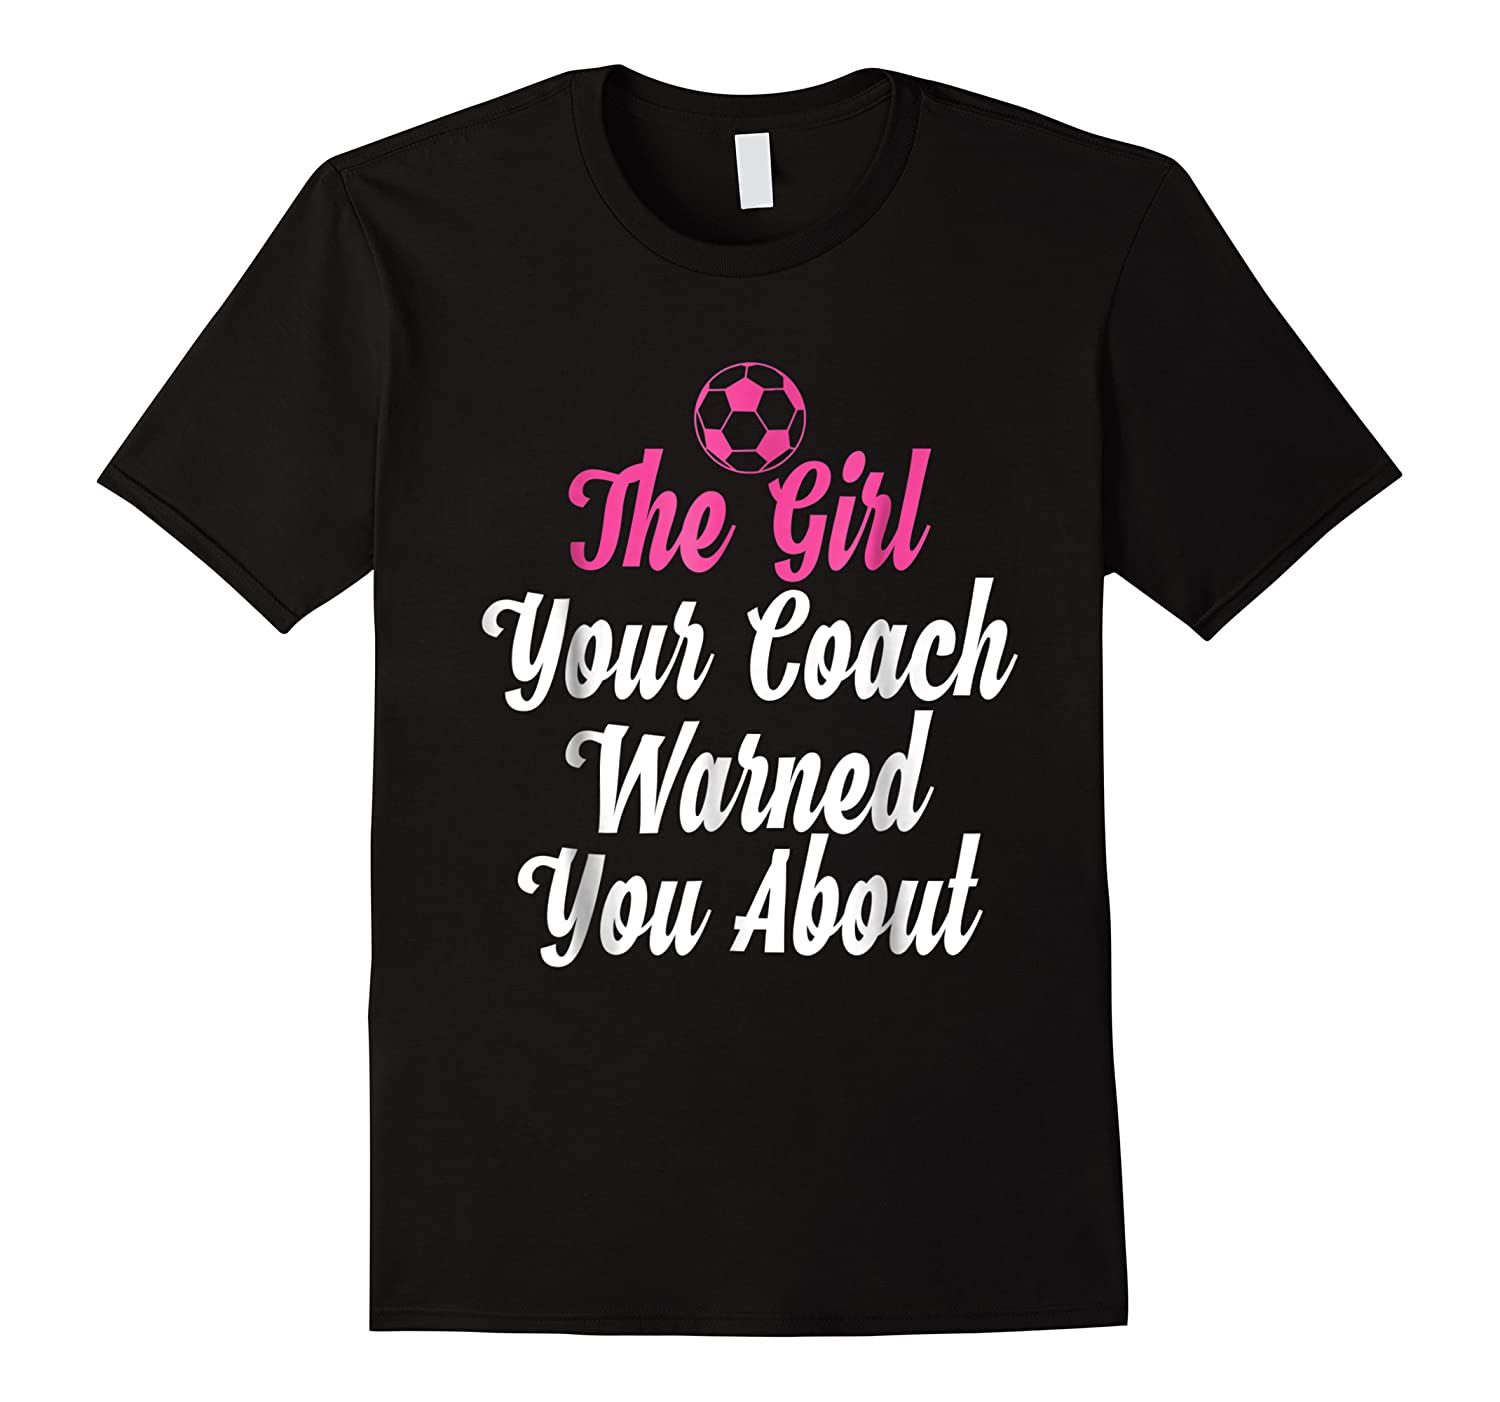 Soccer Girl Your Coach Warned About S Sports Shirts